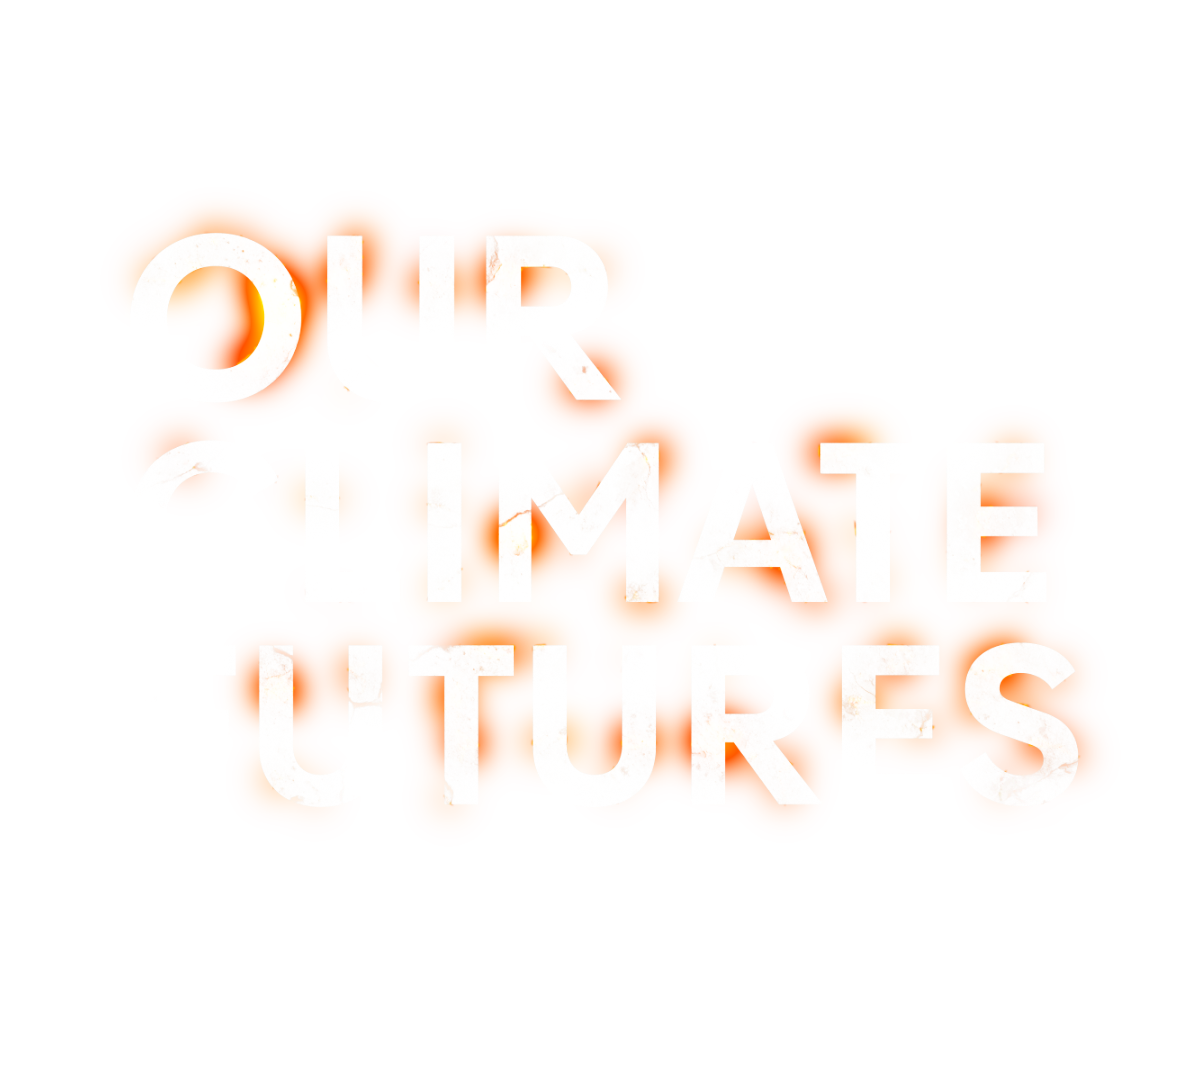 Our Climate Futures